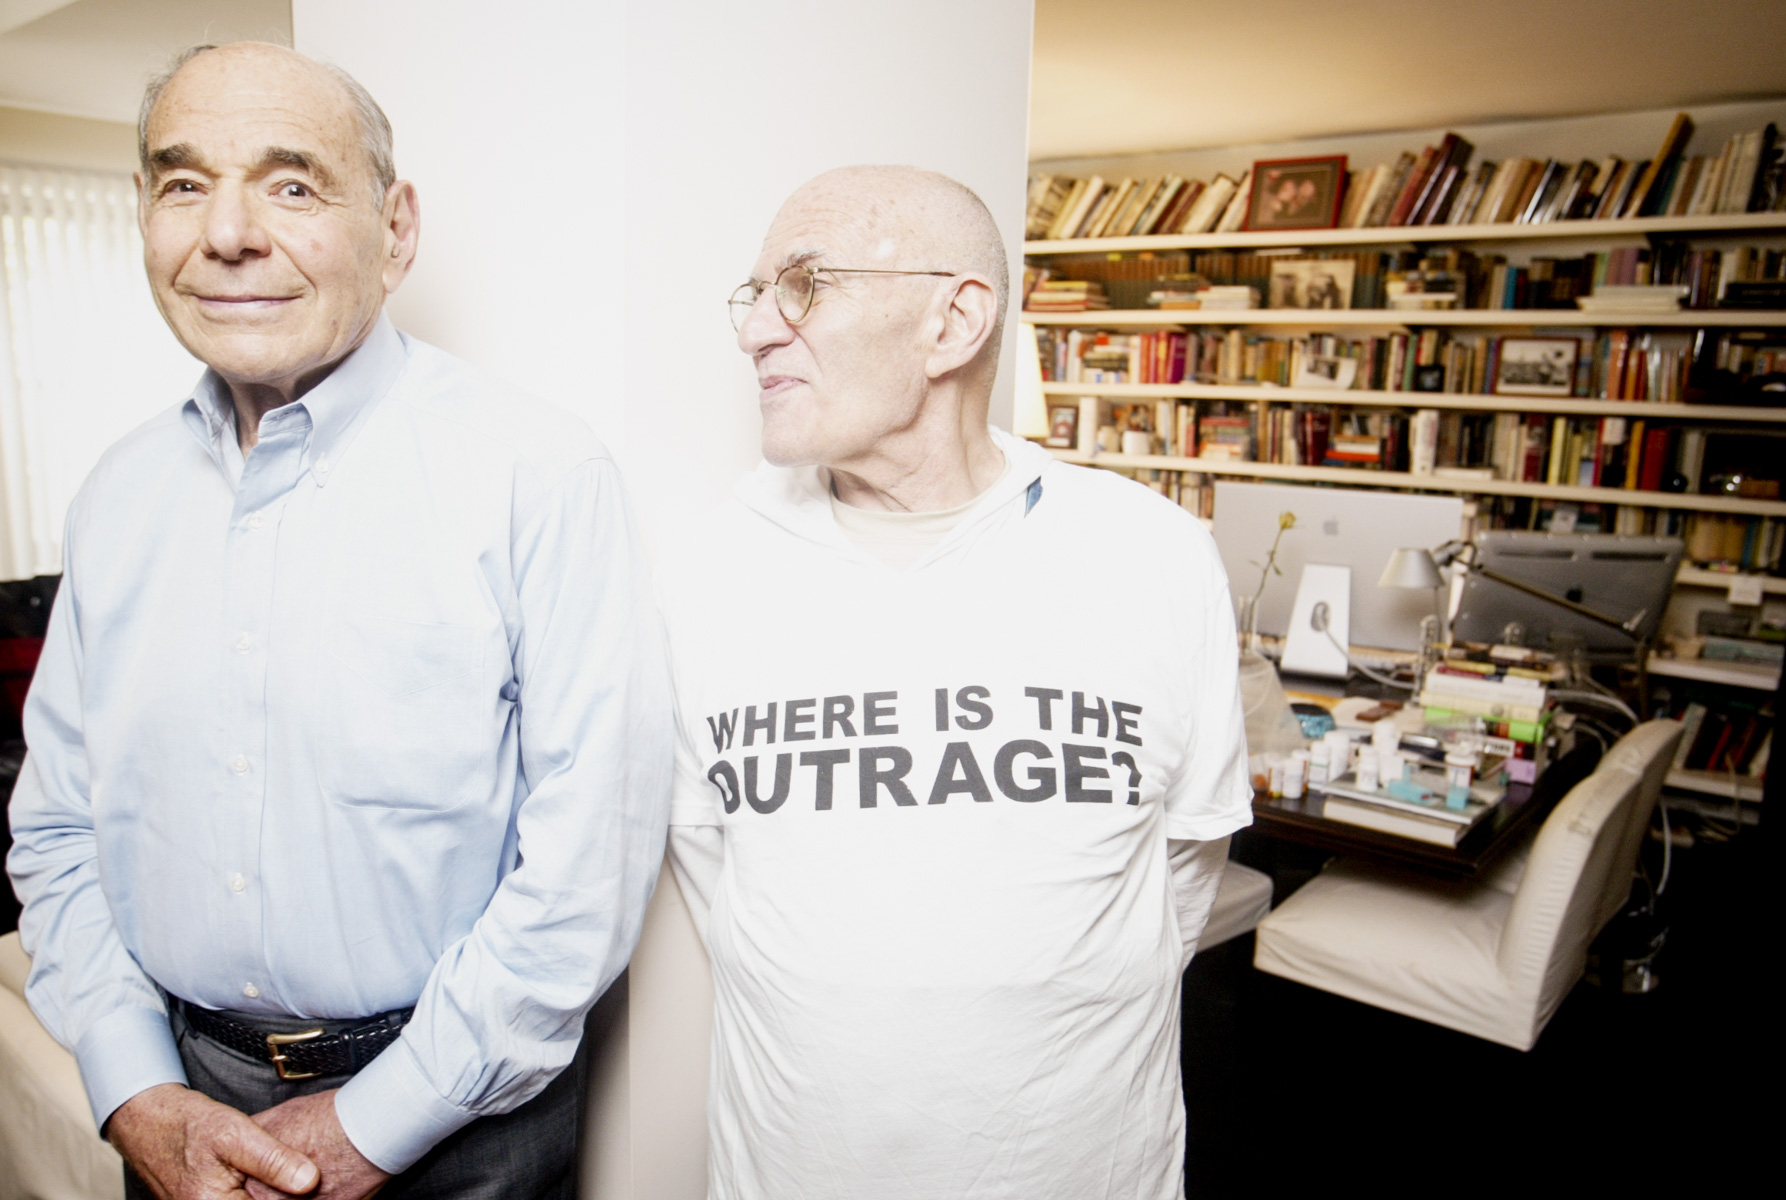 06/14/06 Manhattan, New York - Brothers Arthur and Larry Kramer who are fighting to leagalize gay marriage.Photo Credit Erik Jacobs/The New York TimesAssignment30025222A